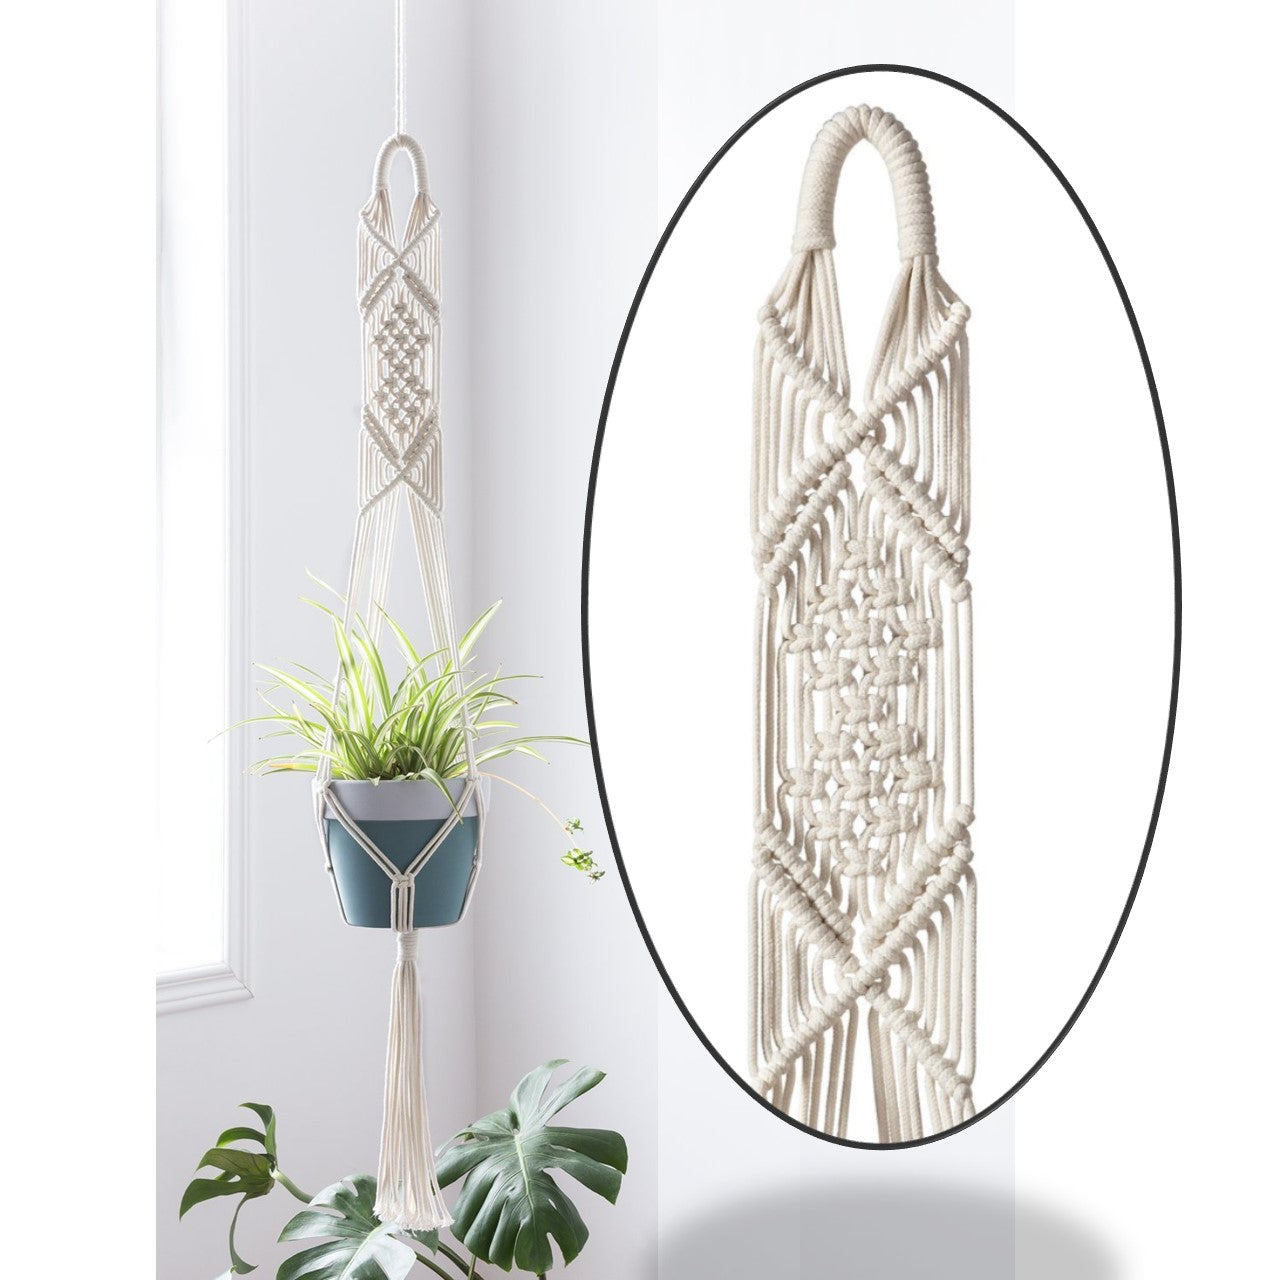 Macrame Cotton Plant Wall Hanger